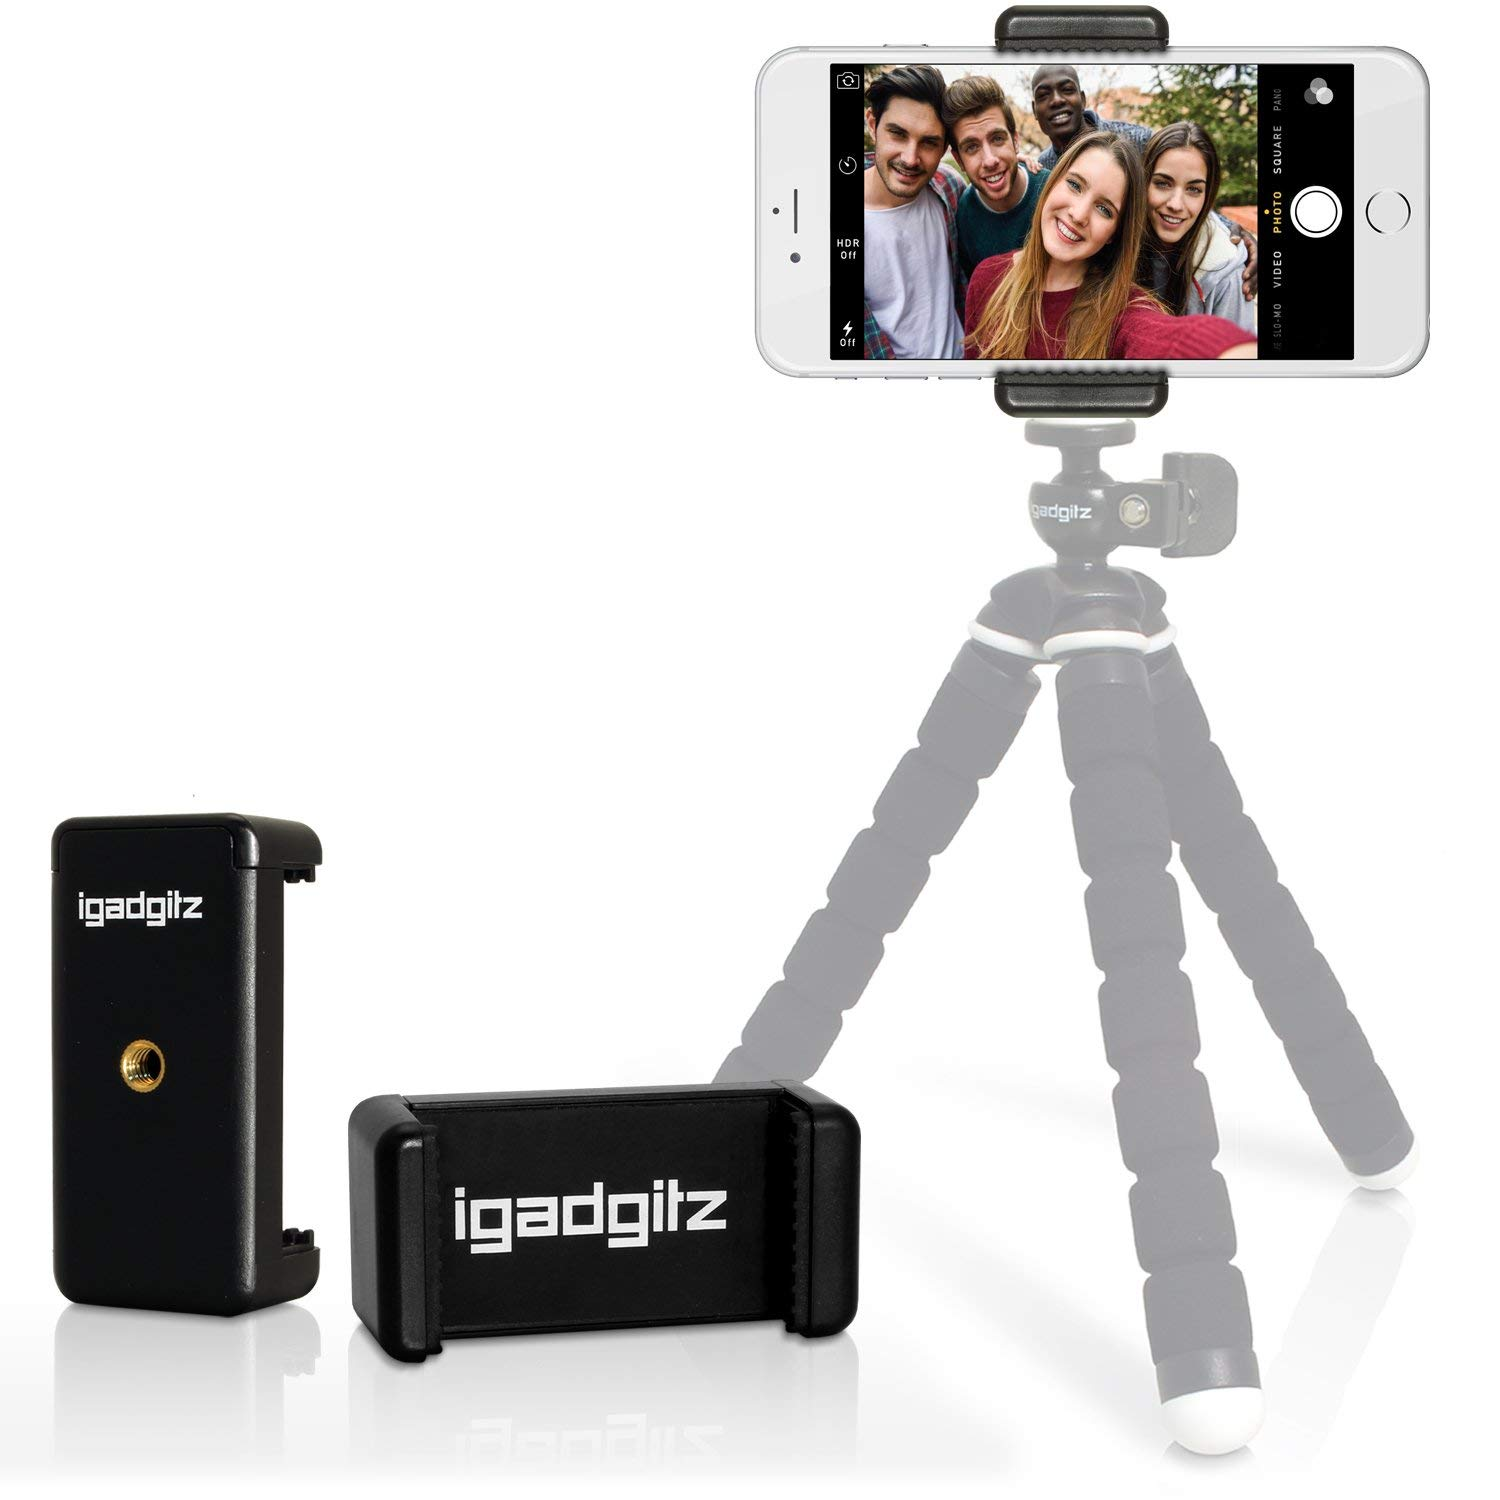 "iGadgitz Tripod and Selfie Stick Smartphone Holder Mount Bracket Adapter for Apple iPhone X 8 4.7"" 8 Plus 5.5"" 7 4.7"" 7 Plus 5.5"" 6 4.7"" 6 Plus 5.5"" 6S 4.7"" 6S Plus 5.5"" SE 5 5S 4HD 4S"